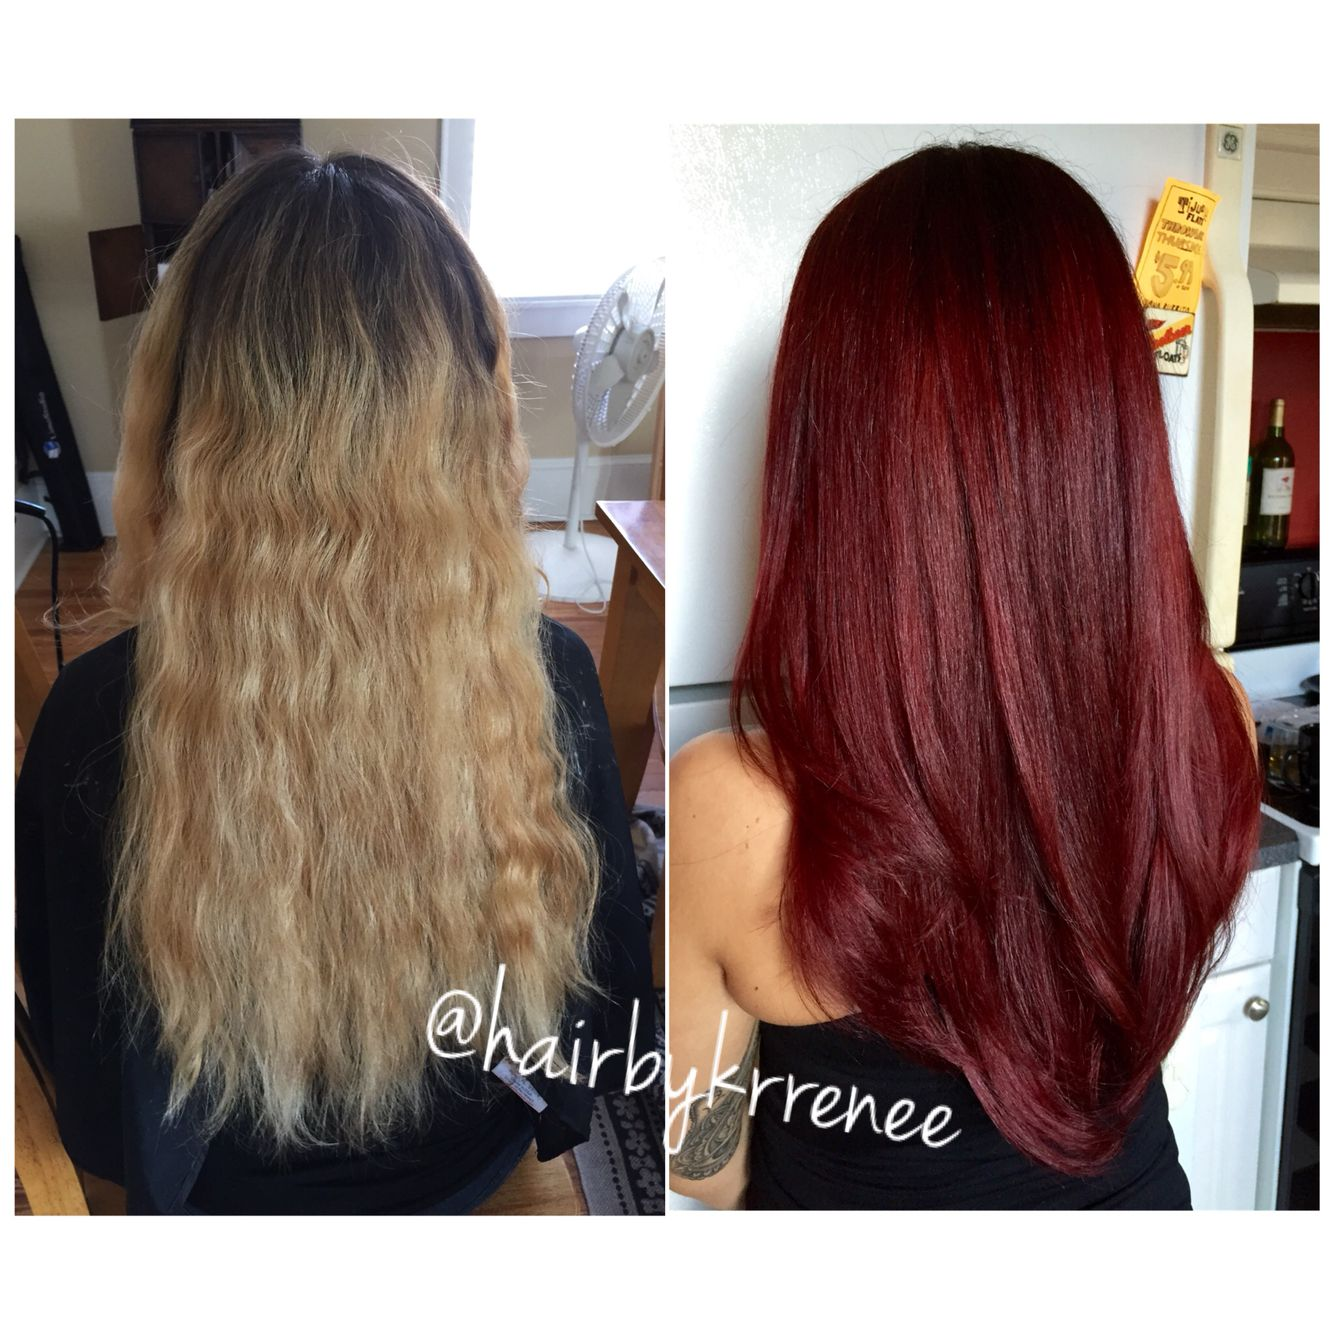 Before And After Blonde To Dark Red Hair For Fall Such A Transformation By Kristenmackoul Deep Red Hair Red Hair Color Burgundy Hair